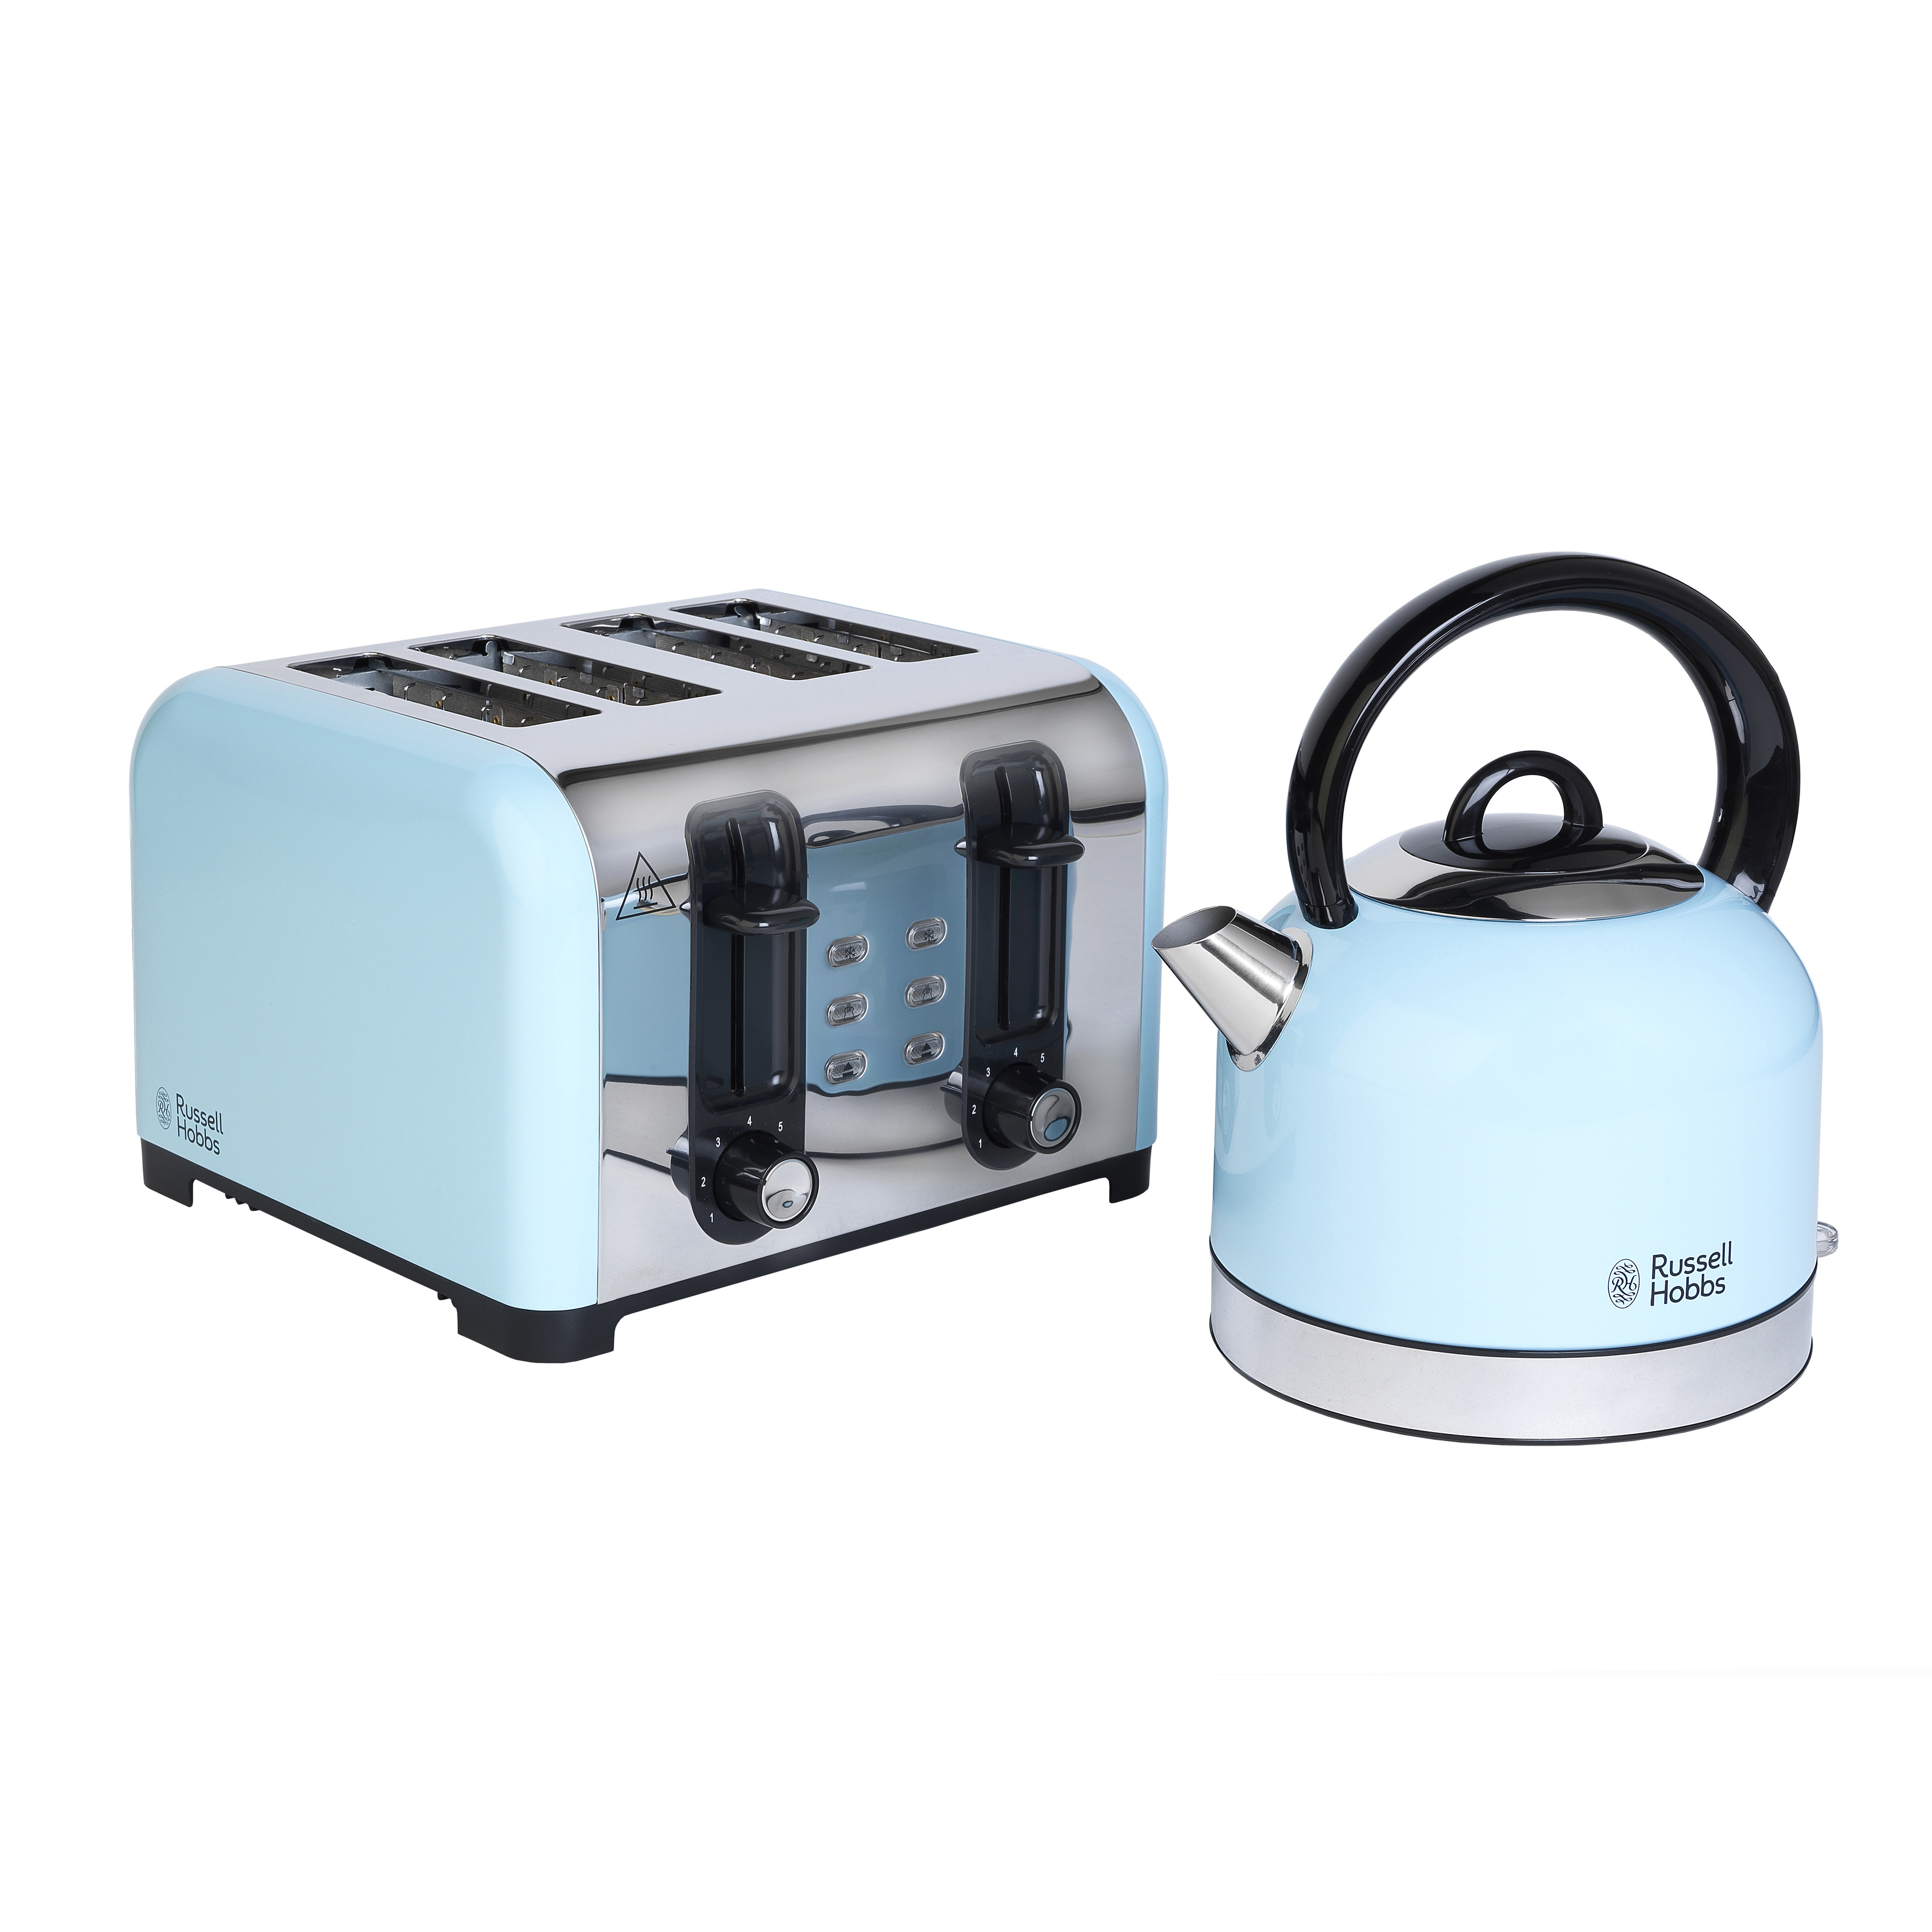 Rus Hobbs Combo 3389 Oslo Traditional Kettle And Four Slice Toaster Breakfast Set Blue